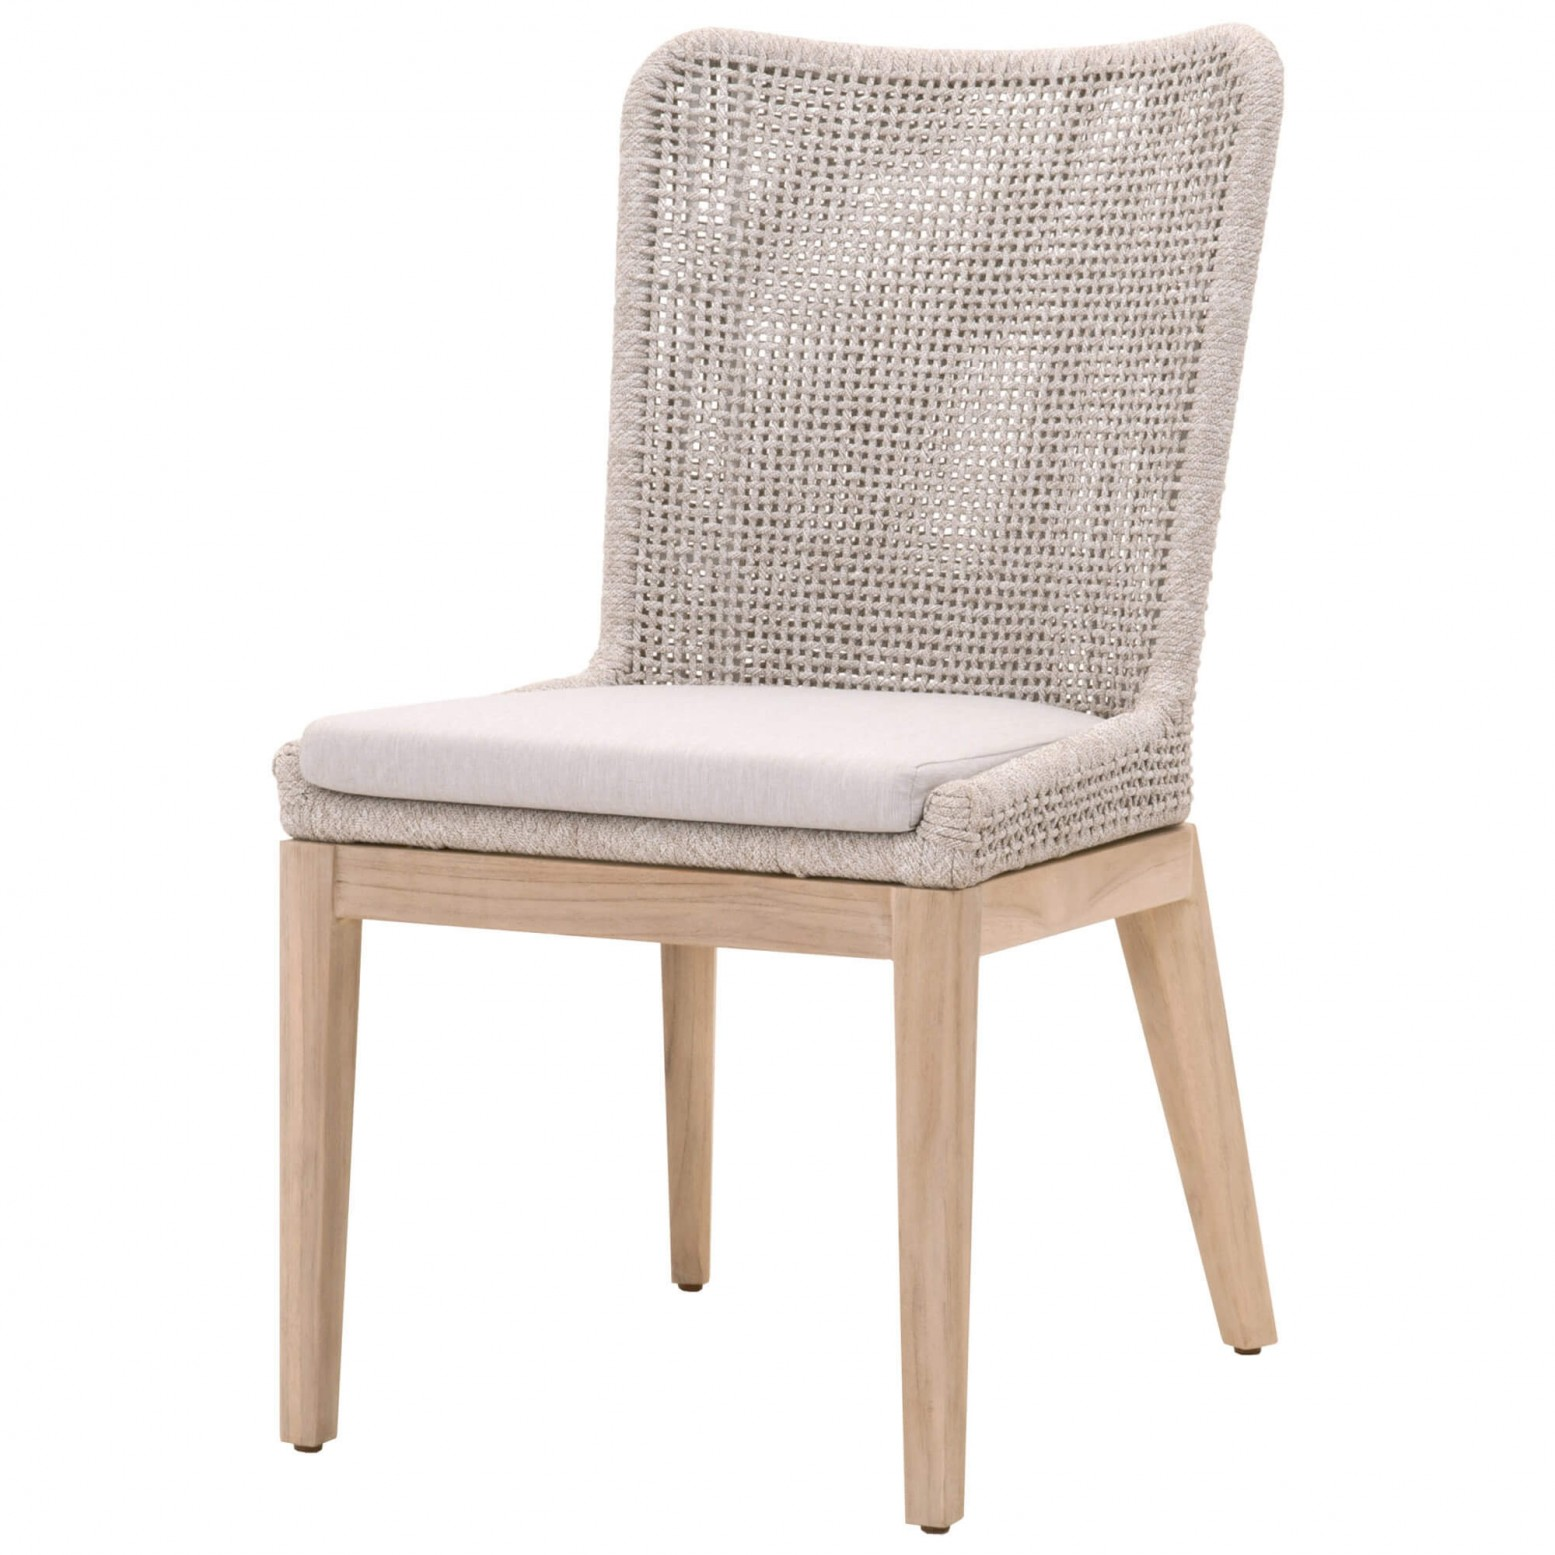 Mesh Outdoor Dining Chair Taupe White Gray Teak By Essentials For Living Sohomod Com